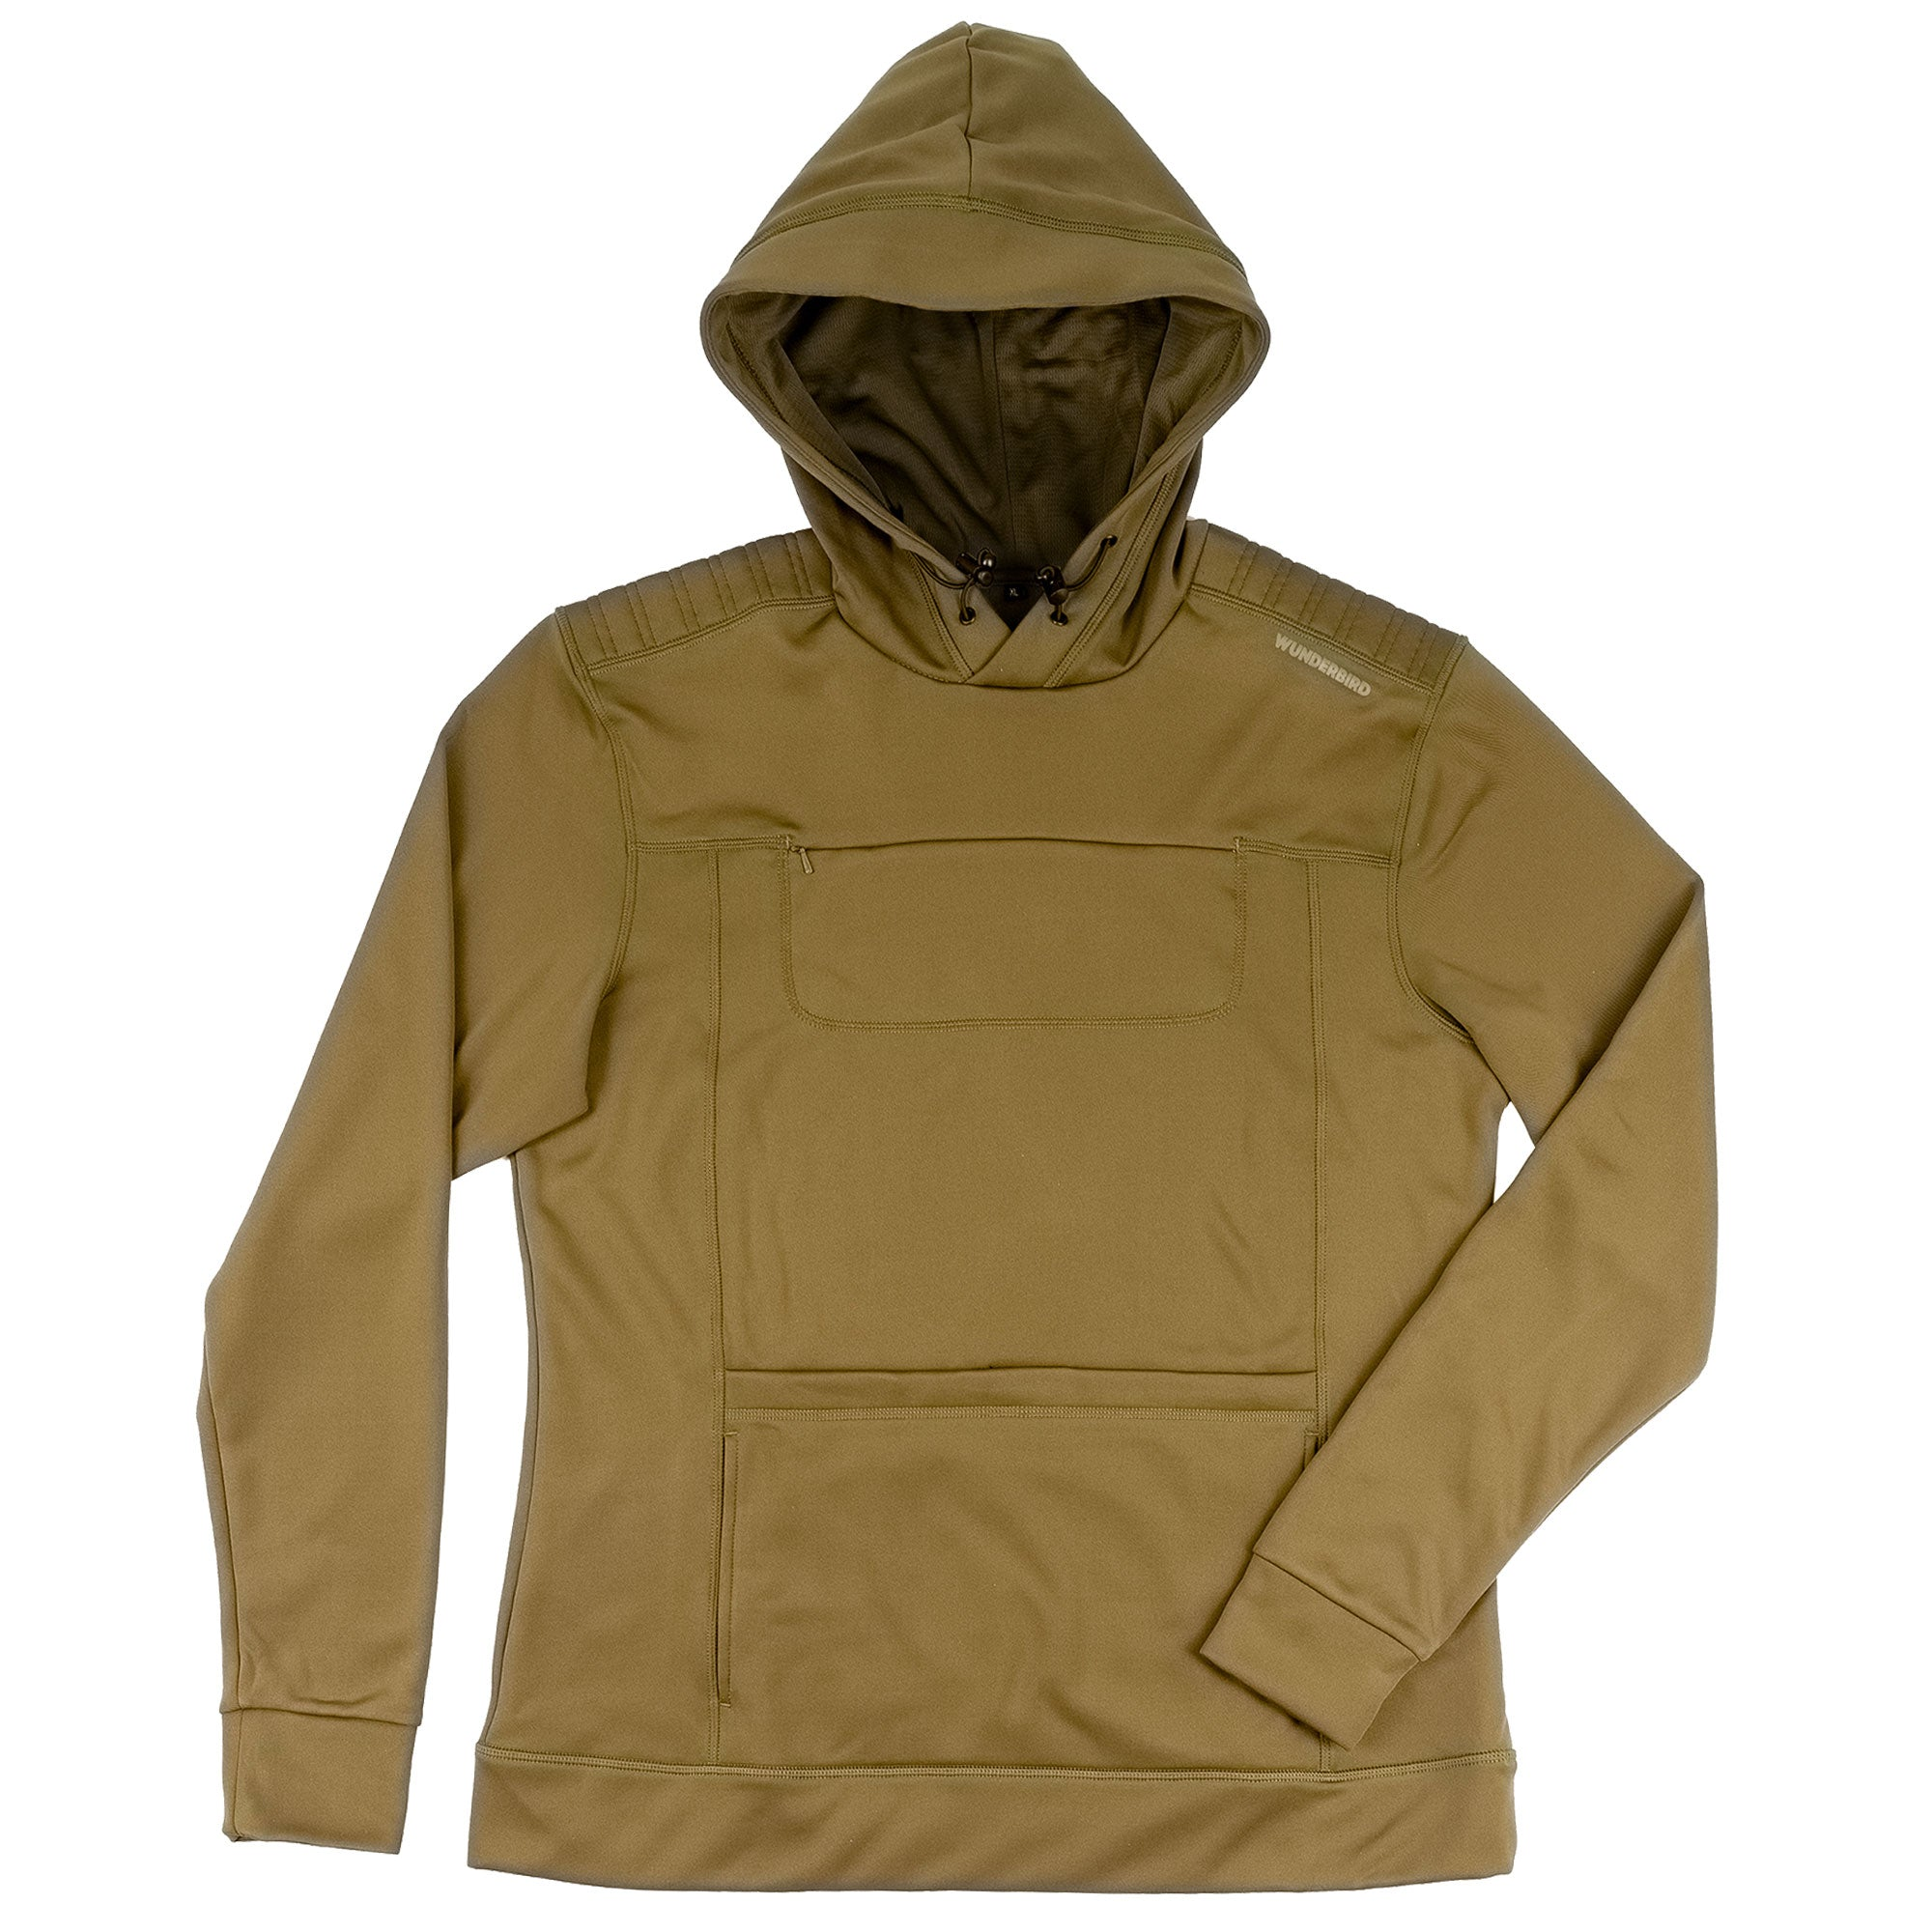 The Gyrfalcon Hoodie in olive green